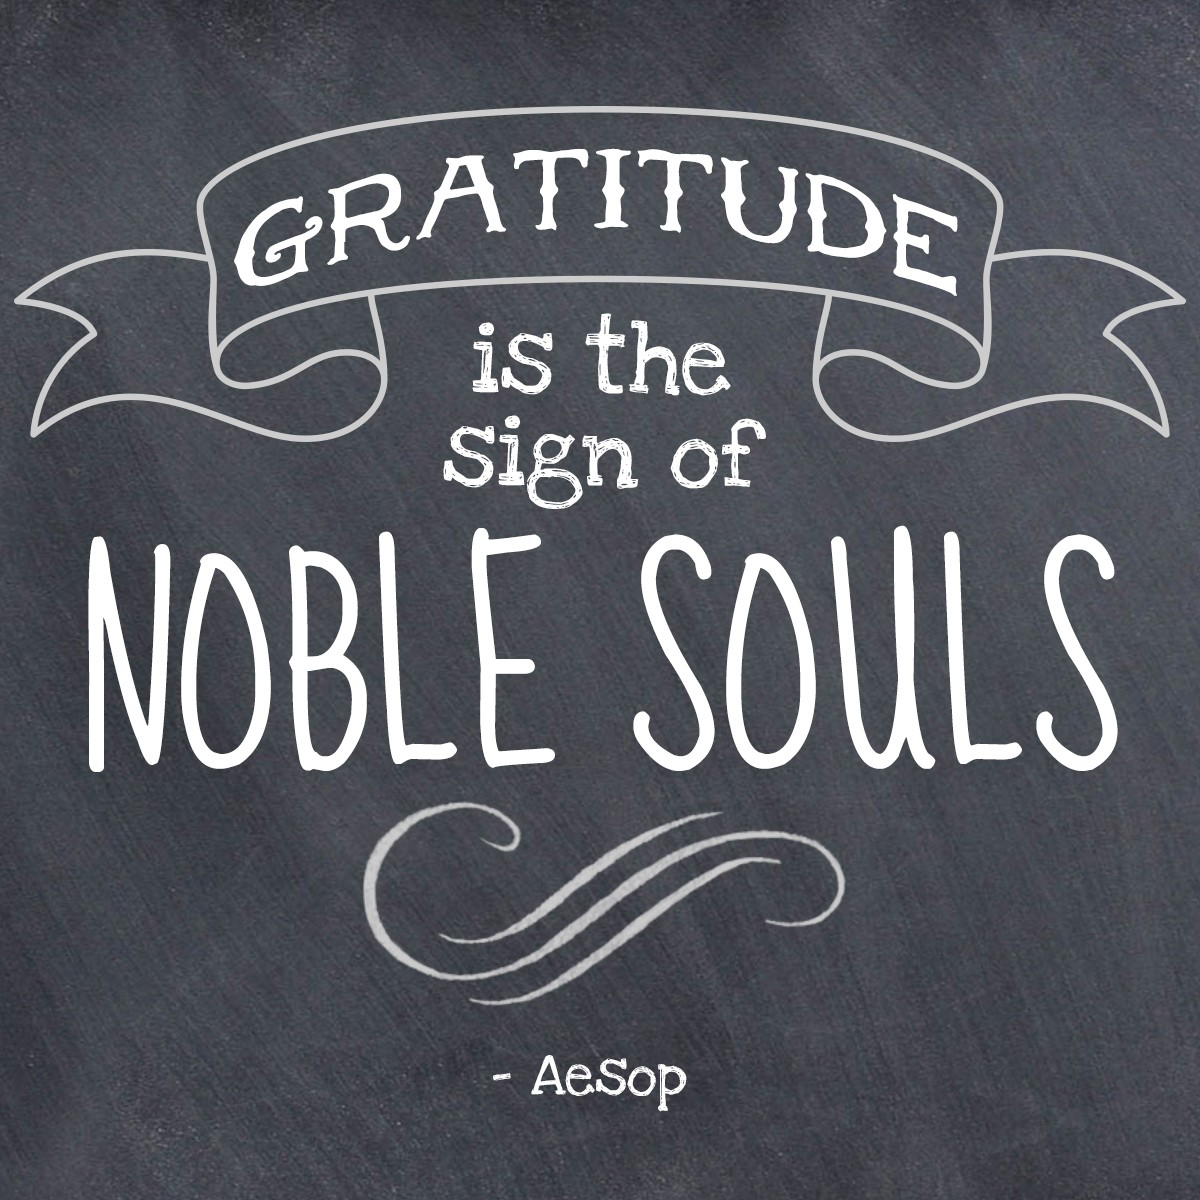 Gratitude is the sign of noble souls. - Aesop | Thanksgiving.com